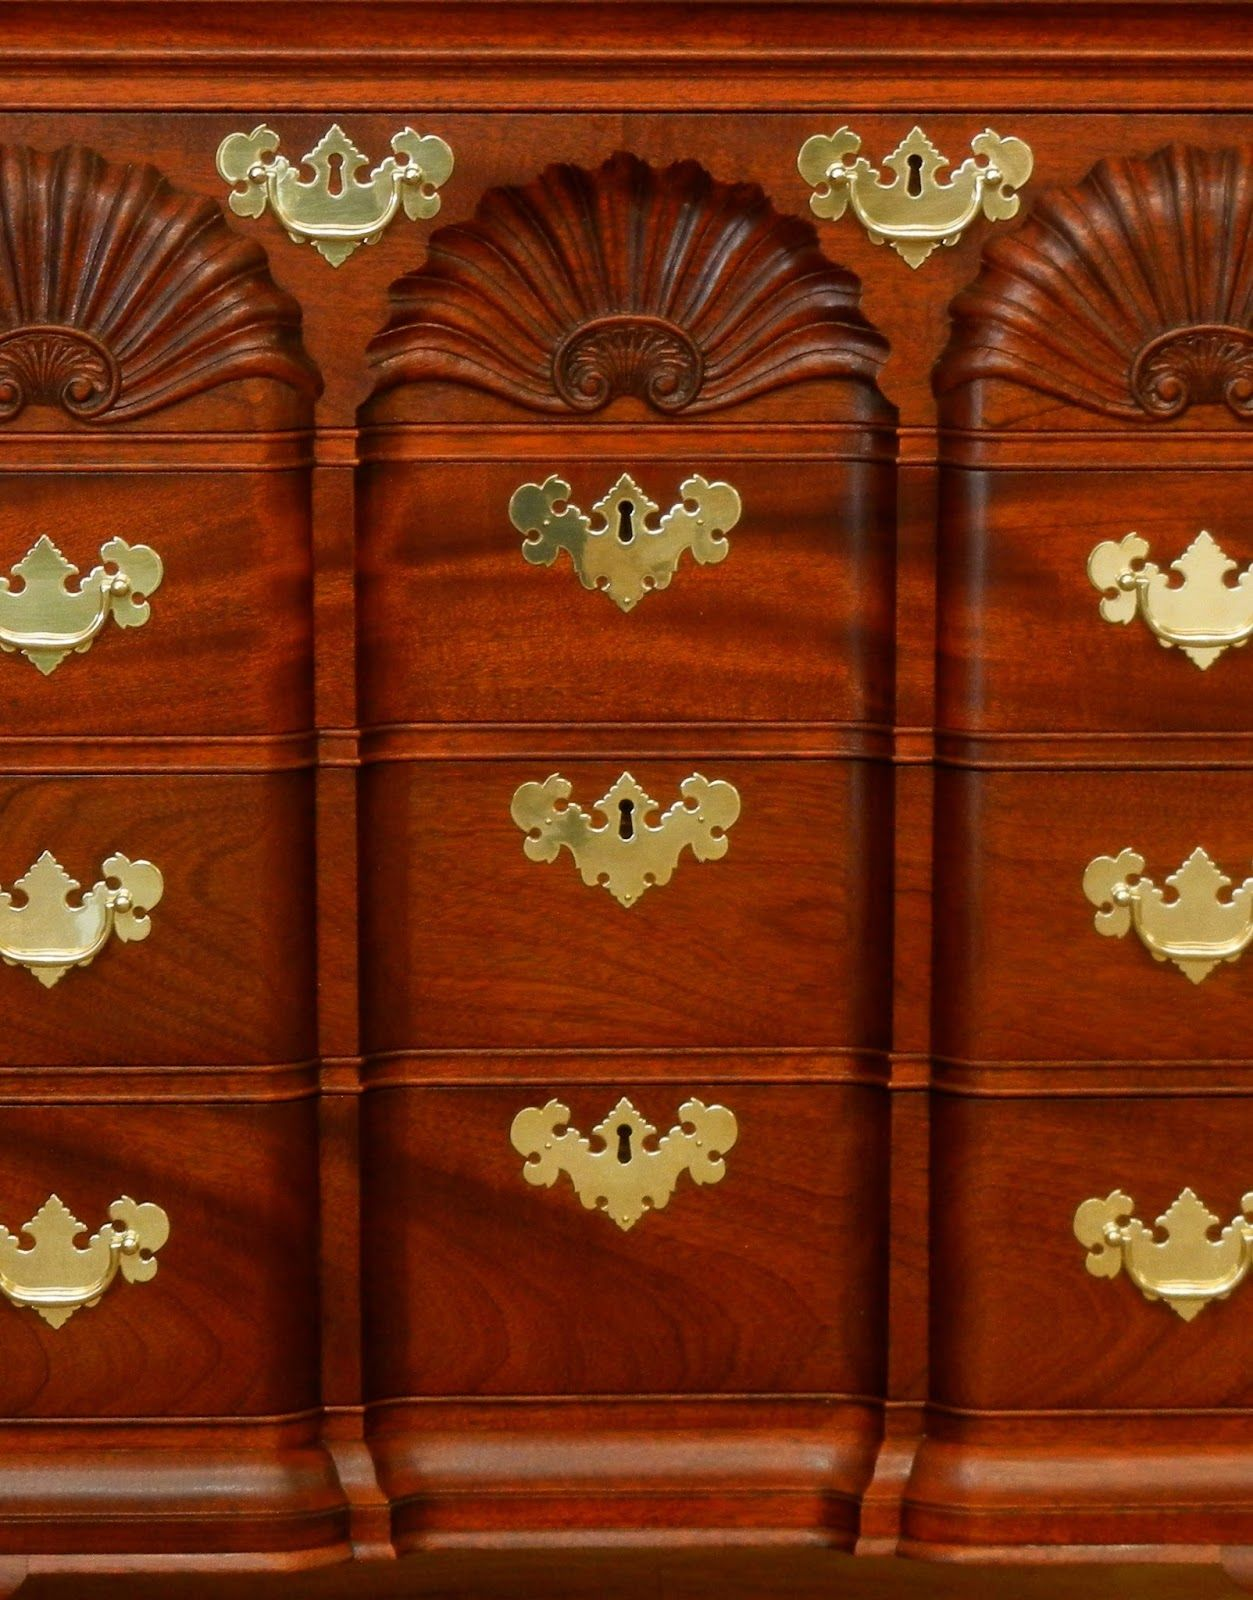 antique furniture reproduction furniture. Fine Handmade Furniture Meticulously Crafted Custom Museum Quality Antique Reproduction NH ME Mass NY